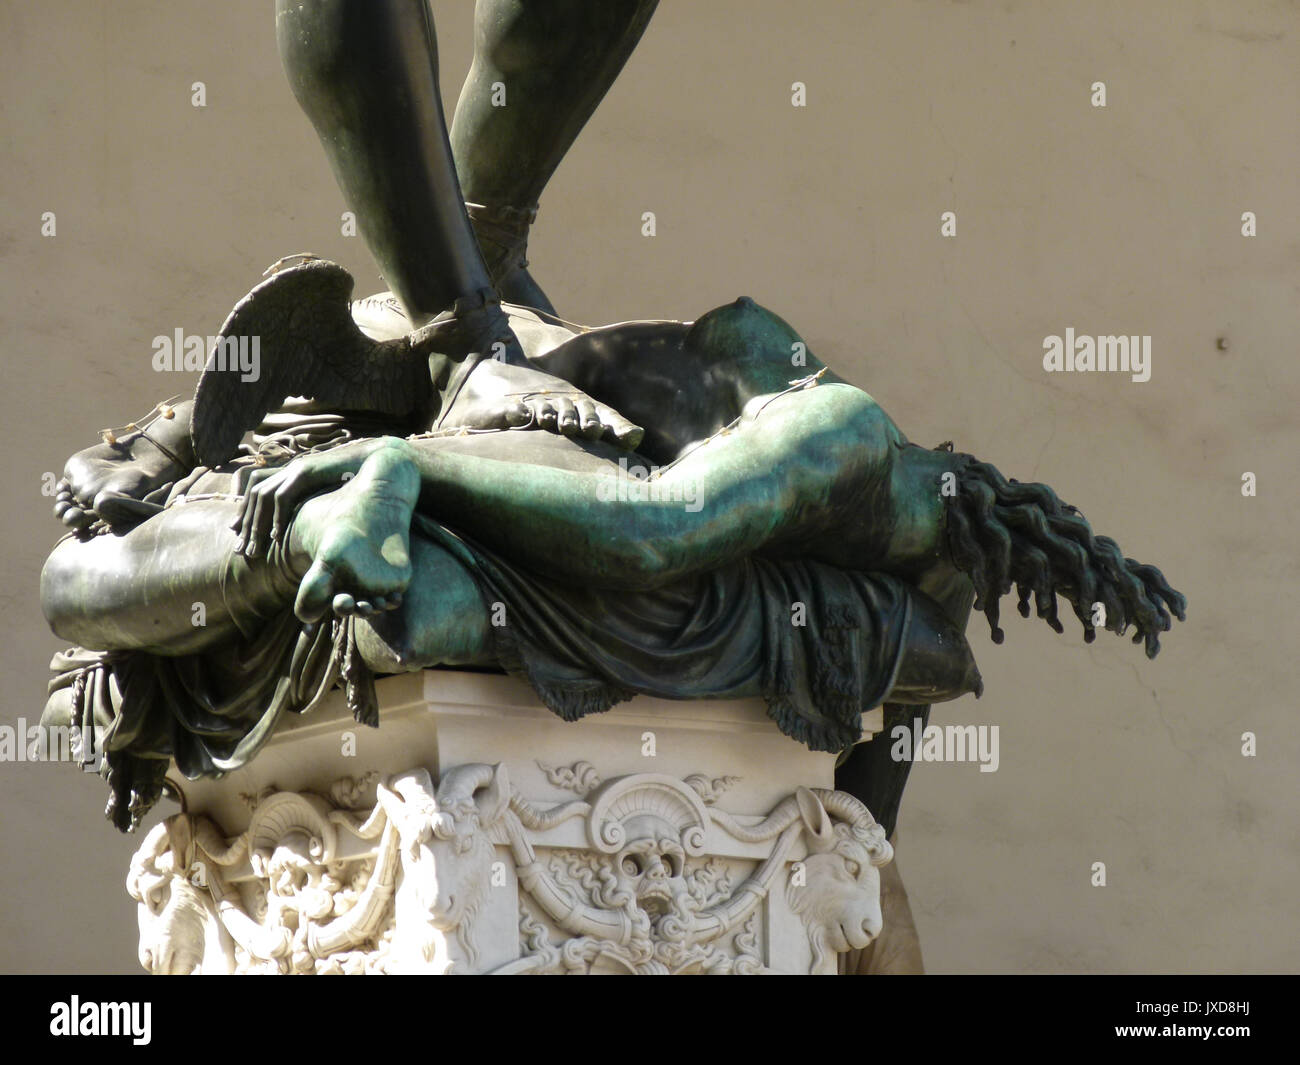 Perseus With The Head Of Medusa Is A Bronze Sculpture Made